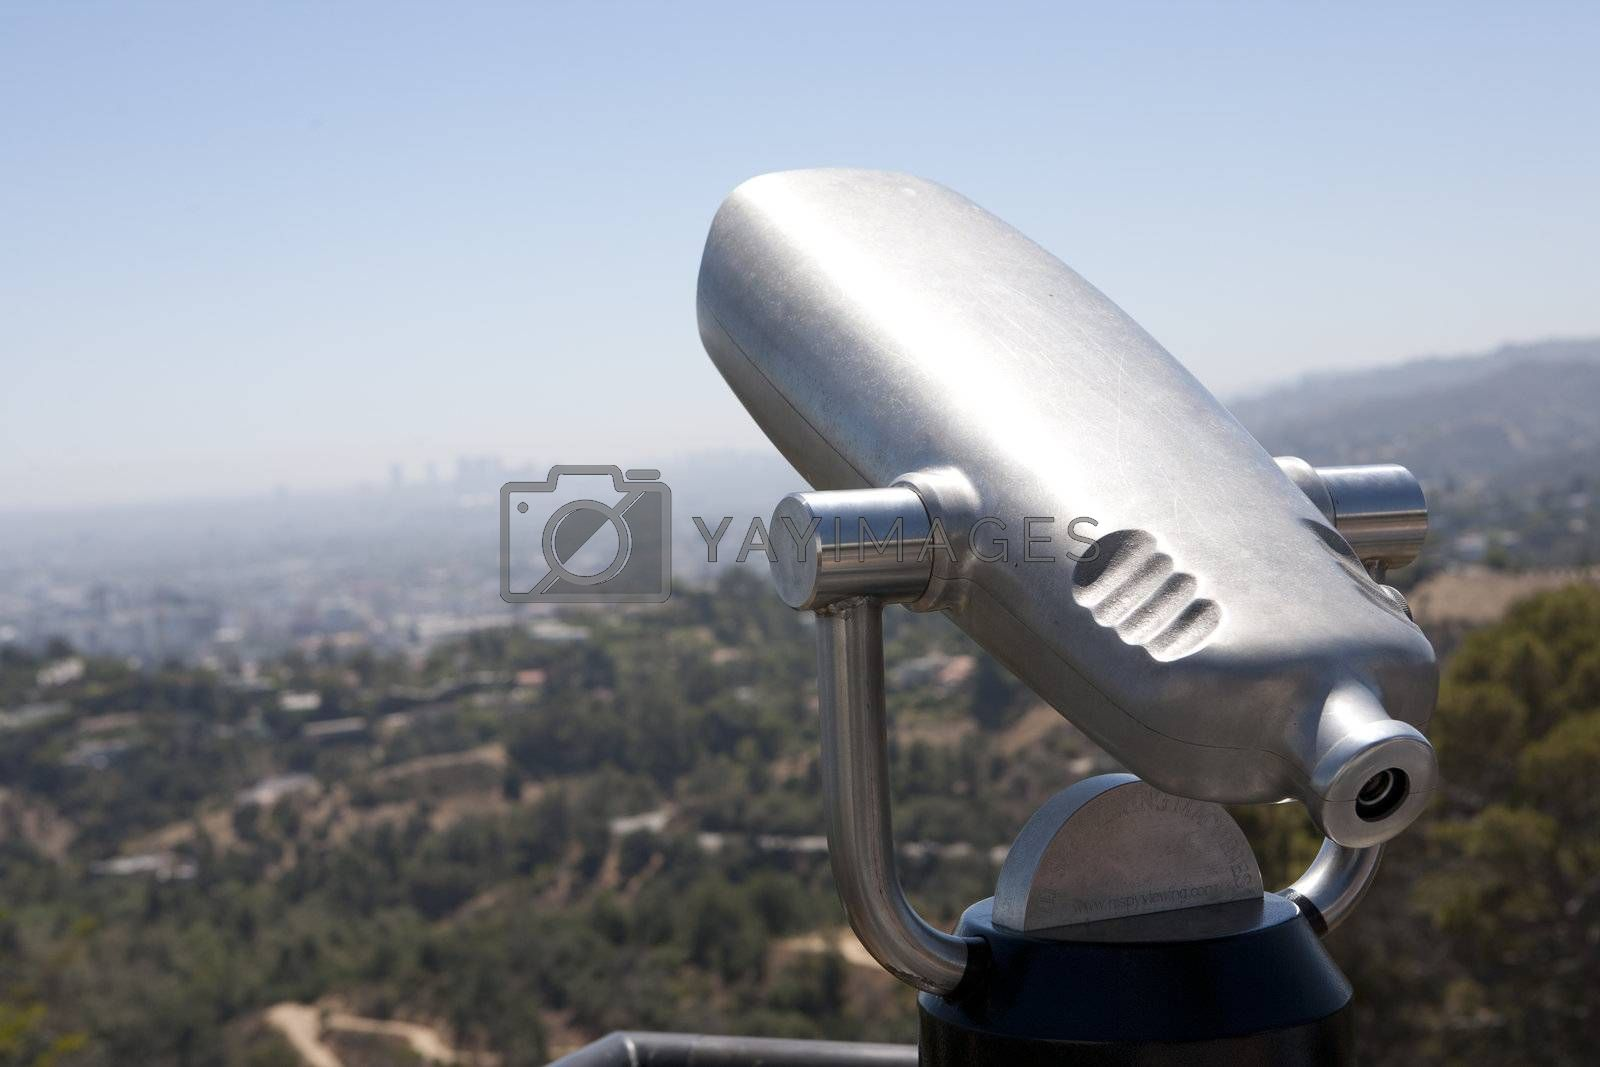 Low power binocular for viewing cityscapes